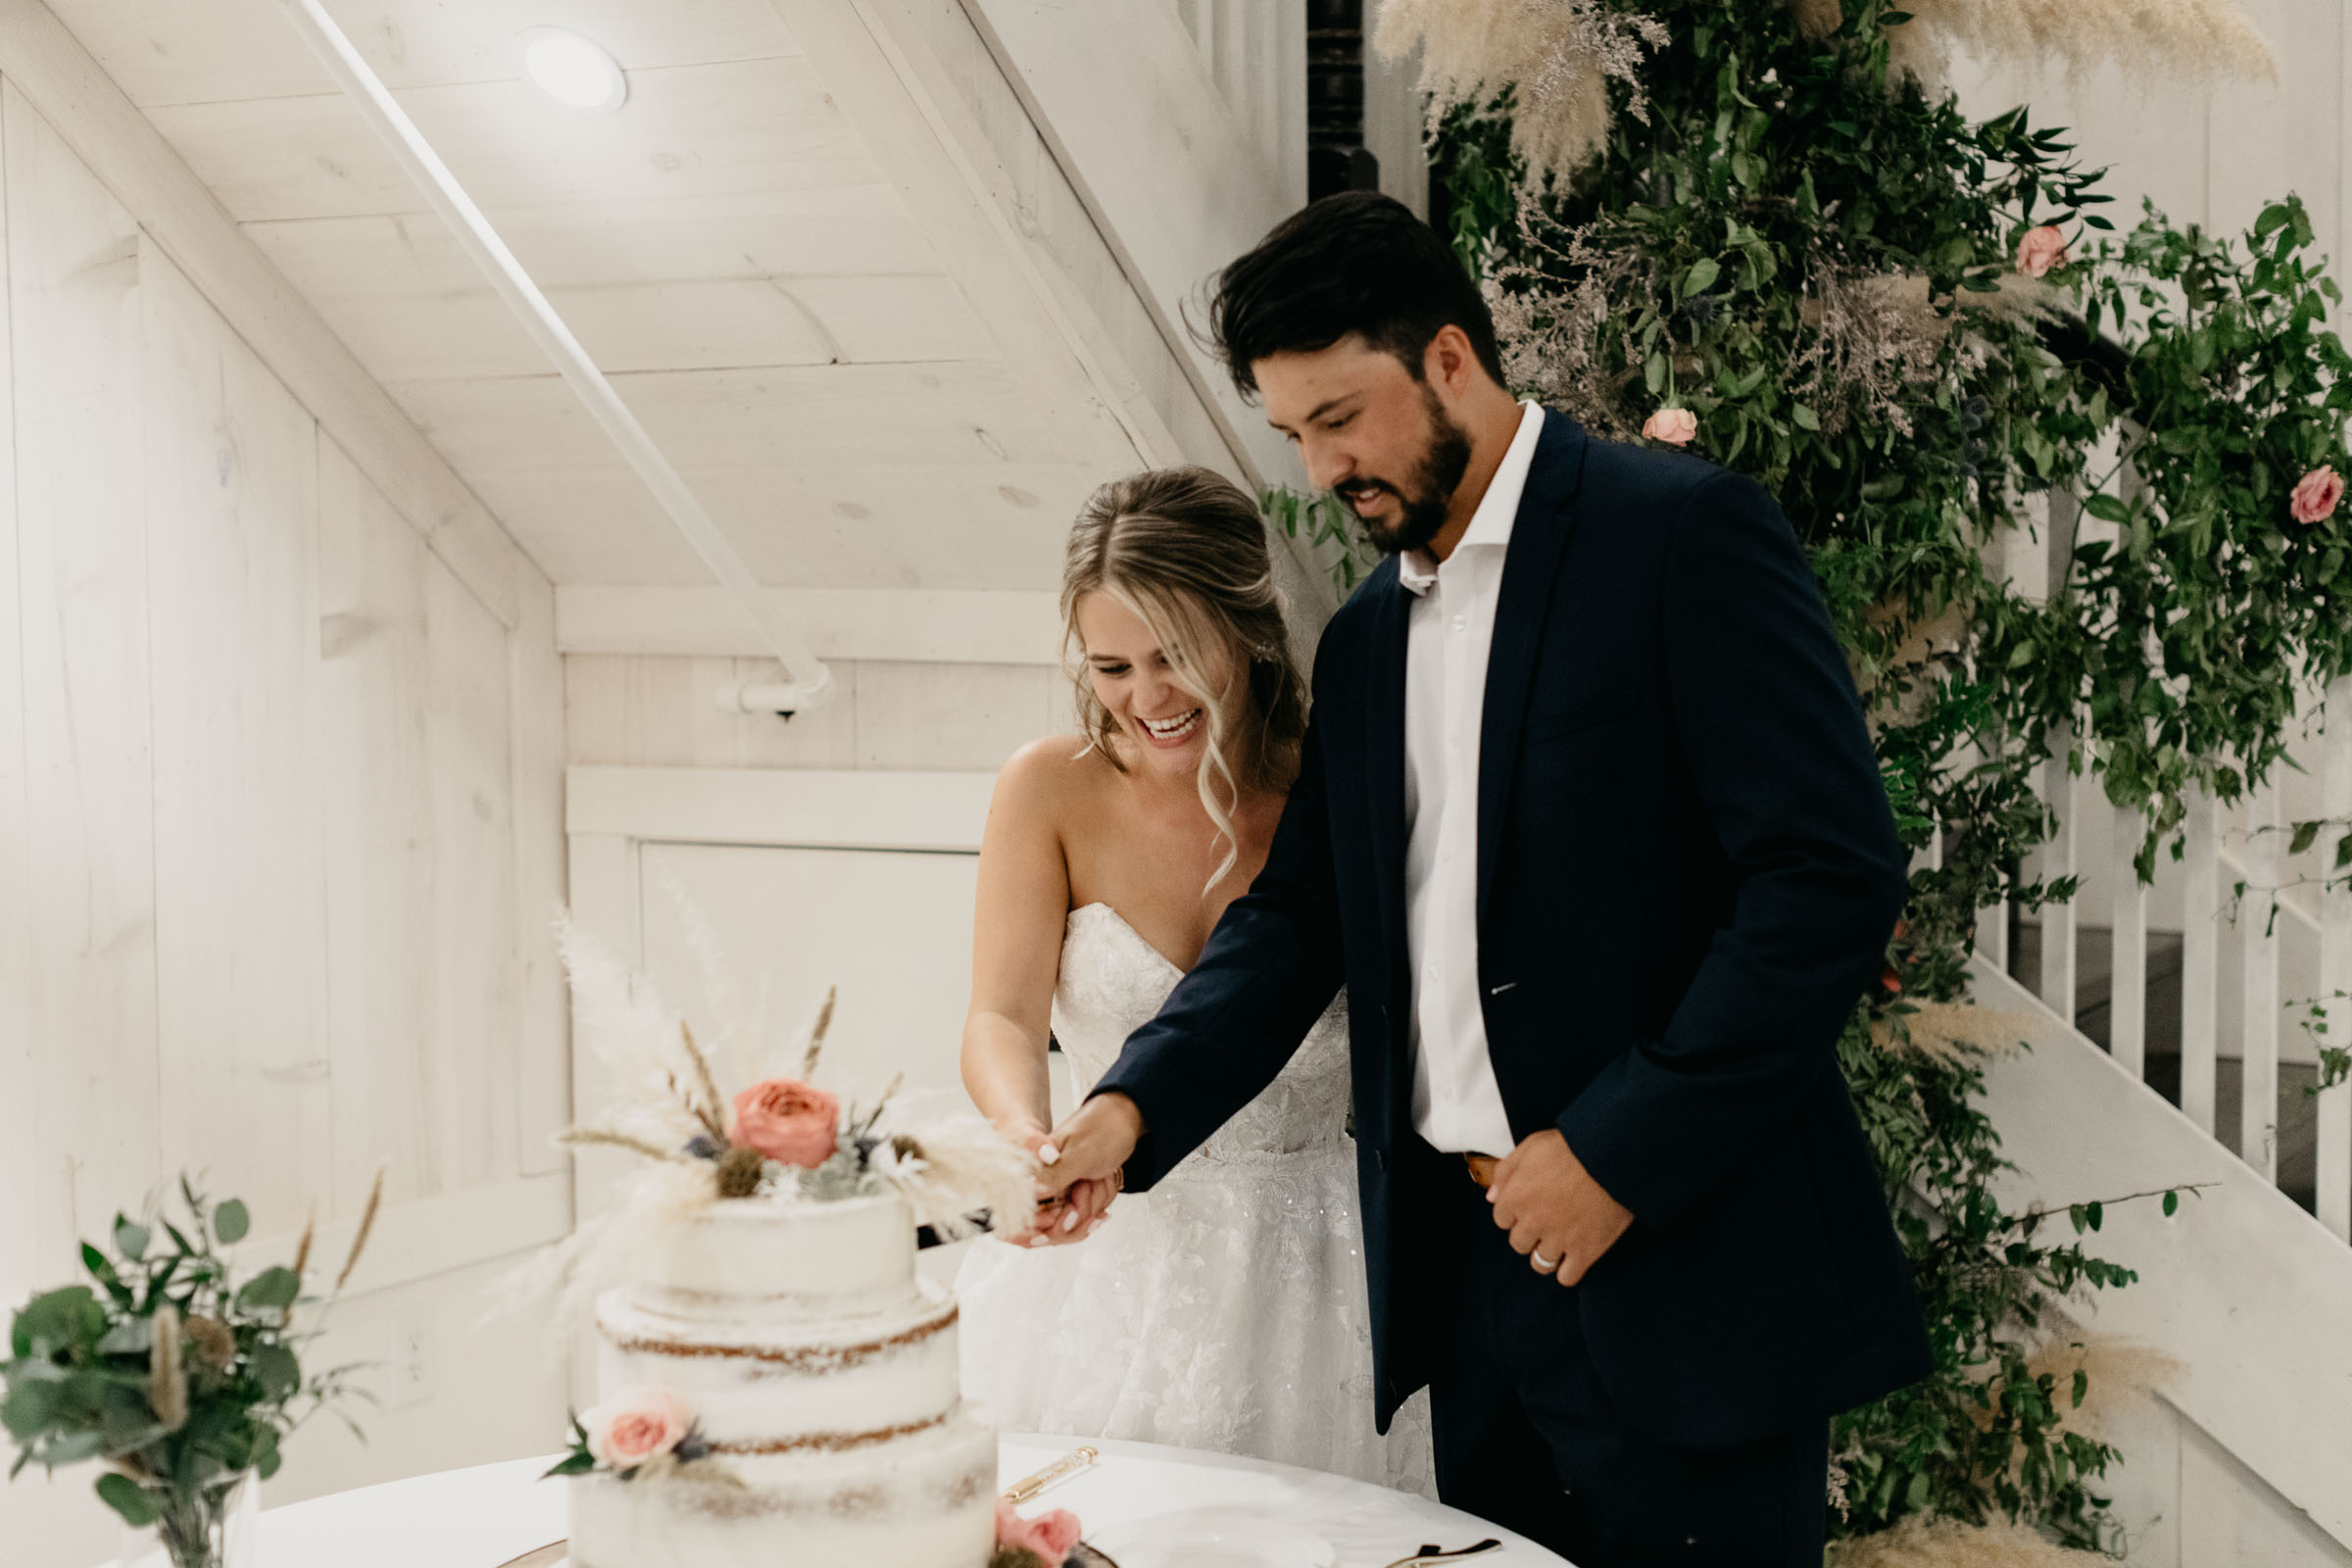 bride and groom cutting white wedding cake